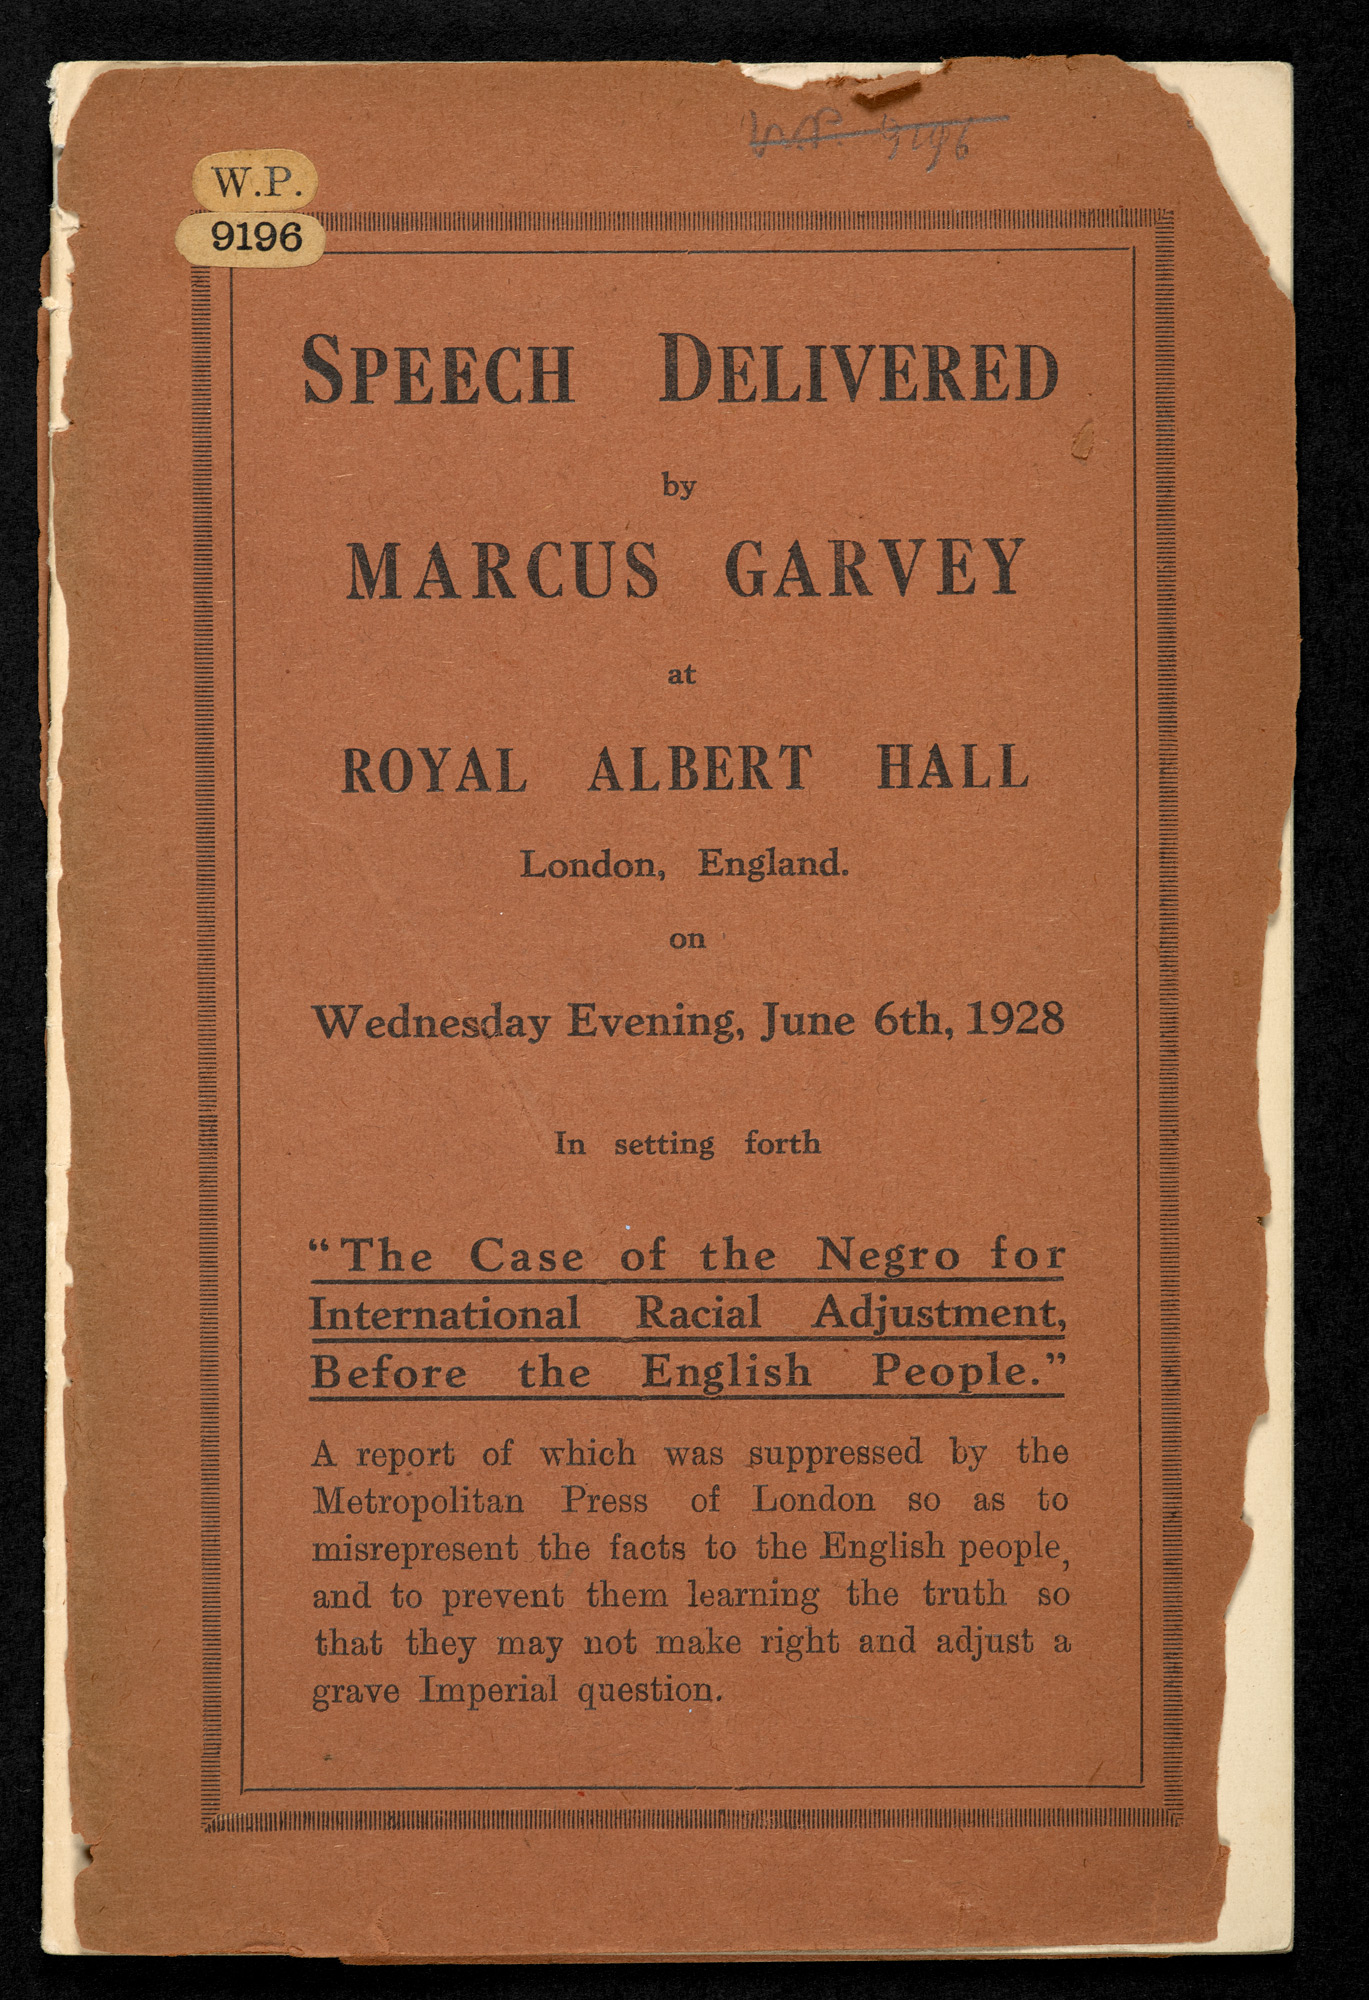 Speech delivered by Marcus Garvey at the Royal Albert Hall